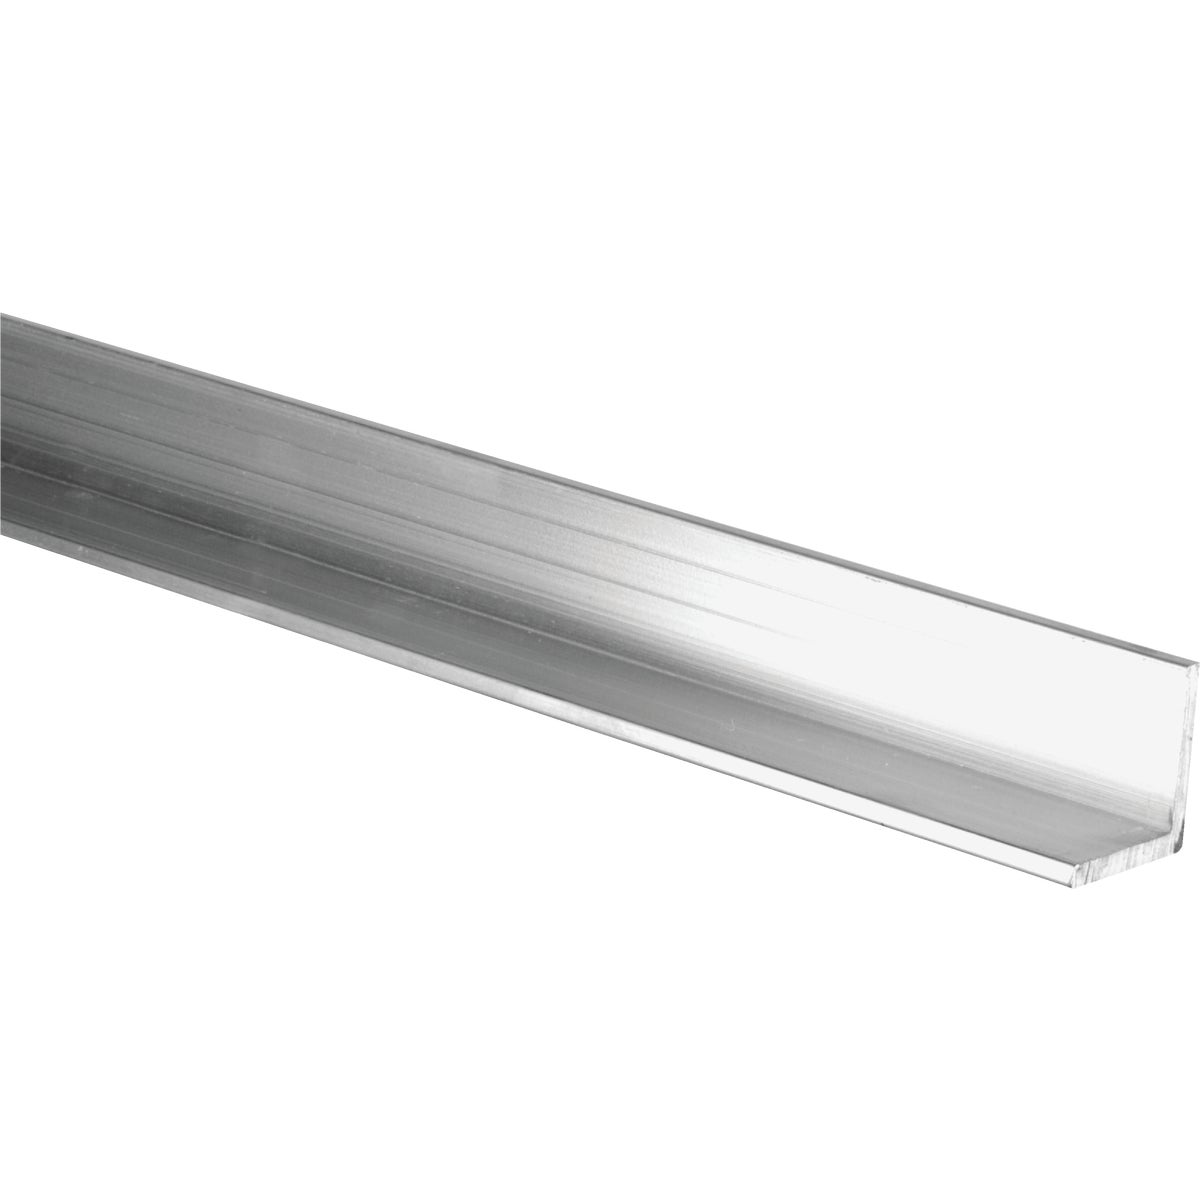 1/16X1X8' ALUM ANGLE - N258301 by National Mfg Co